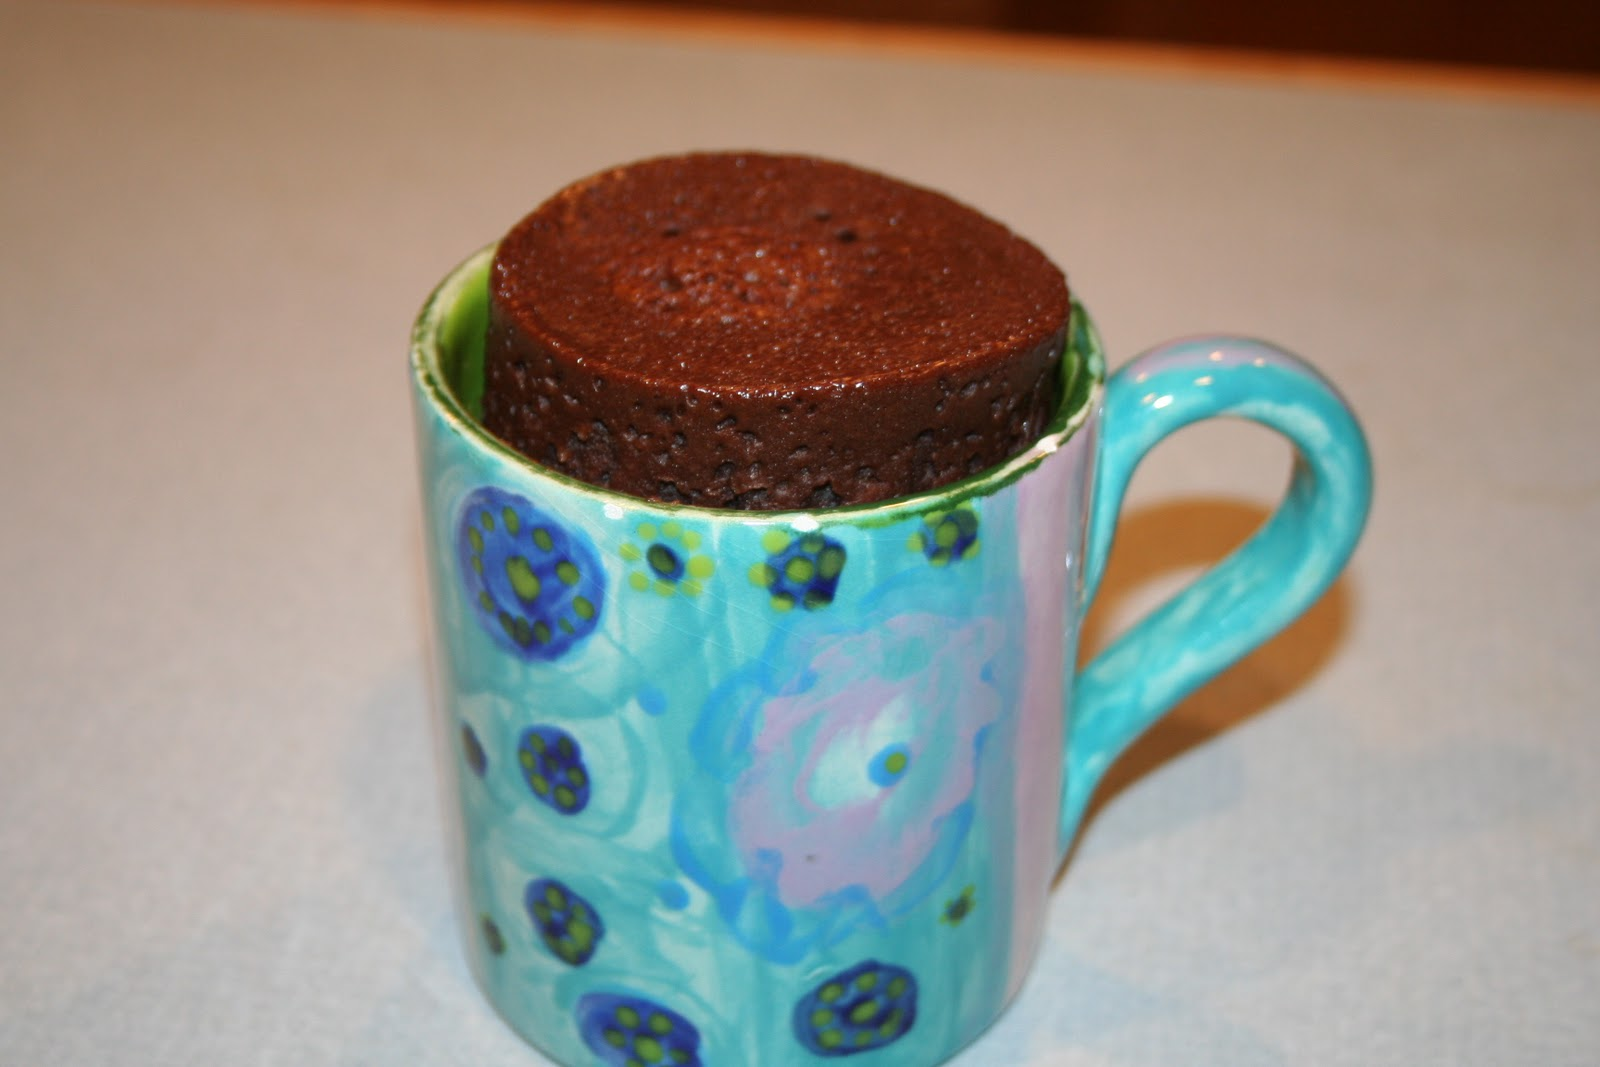 COOK WITH SUSAN: Microwave Chocolate Cake in a Mug